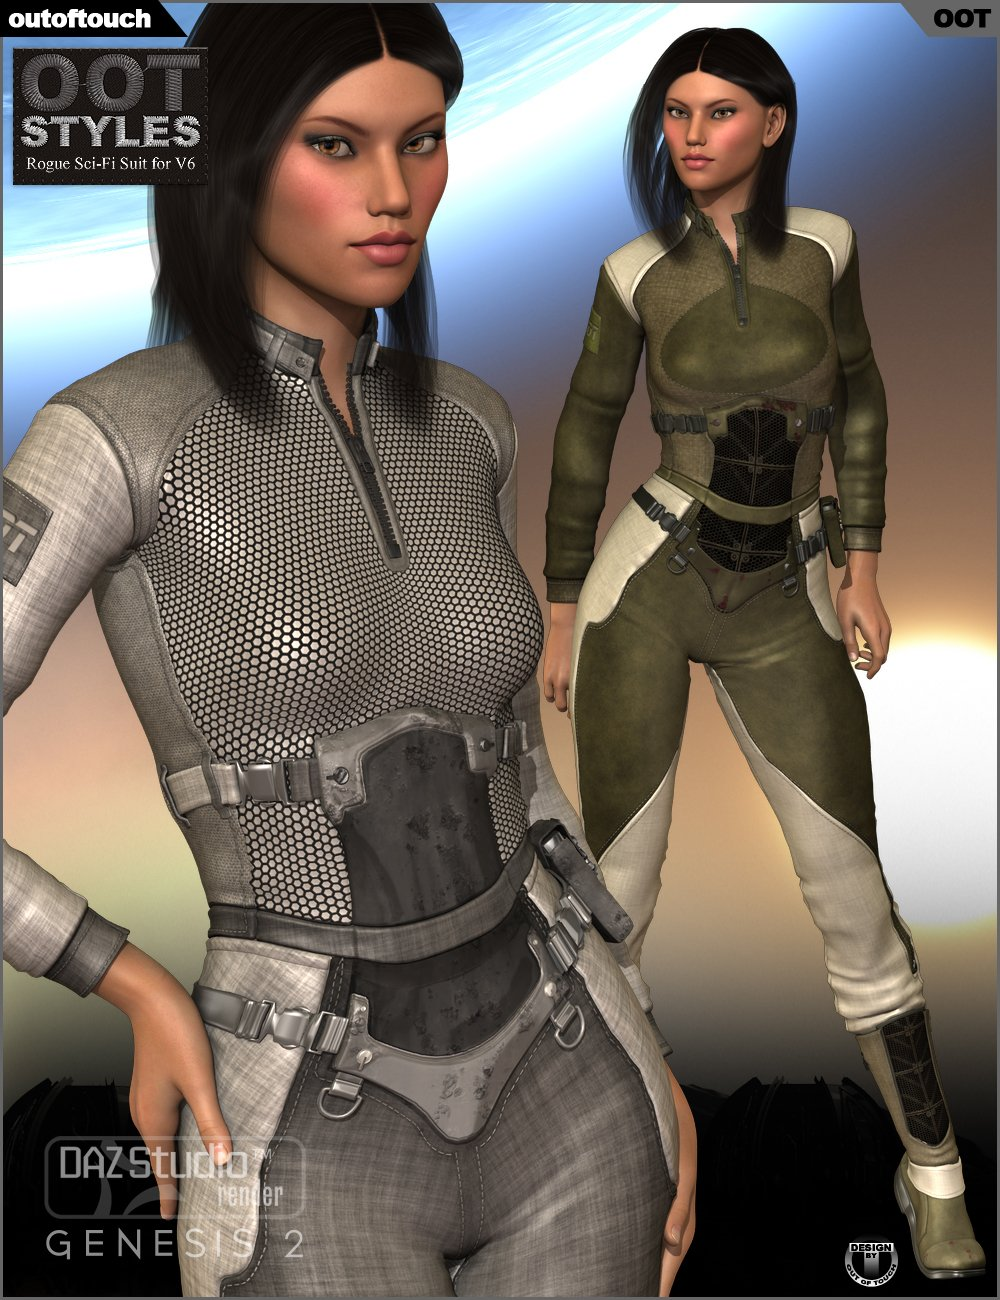 OOT Styles for Rogue Sci-Fi Outfit by: outoftouch, 3D Models by Daz 3D